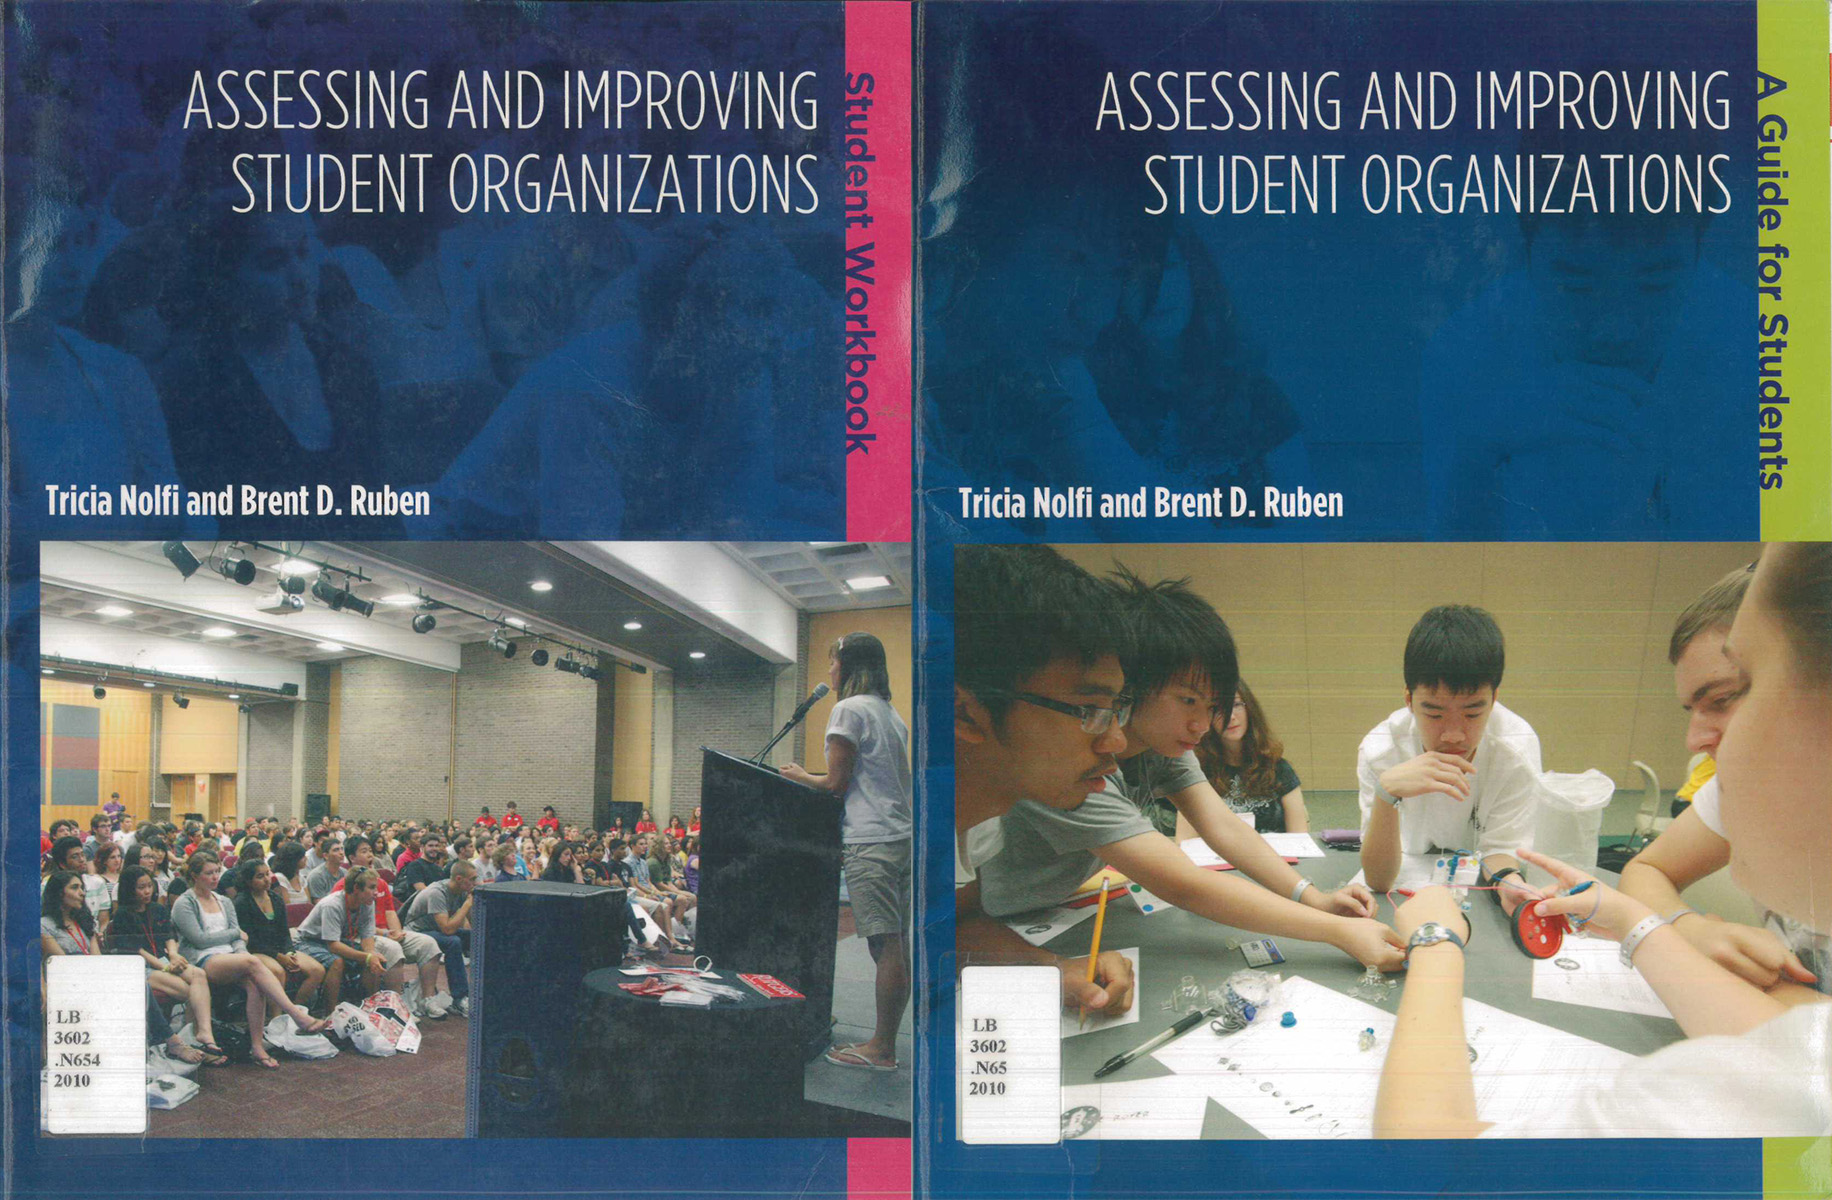 Assessing and Improving Student Organizations: The Student Guide and Student Workbook